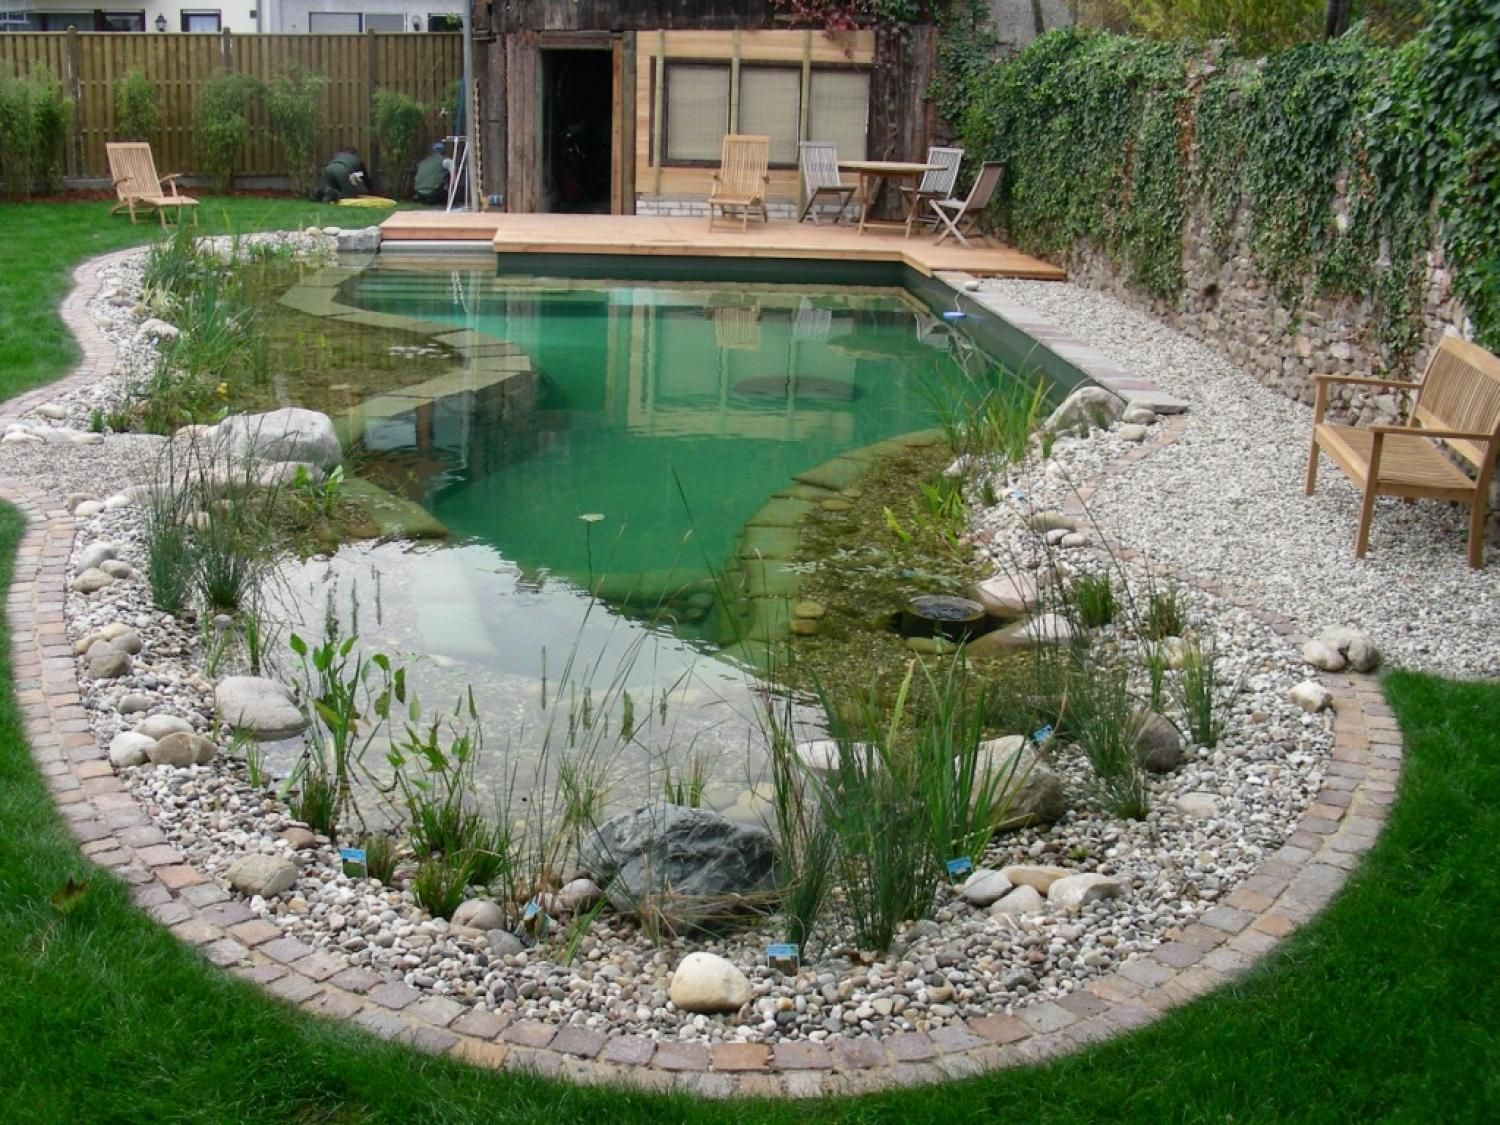 Merveilleux Interesting Small Backyard Pool Design With Bench Also Wooden Sleeper Sofa  Then Living Outdoor With Wooden Floor For Small House.